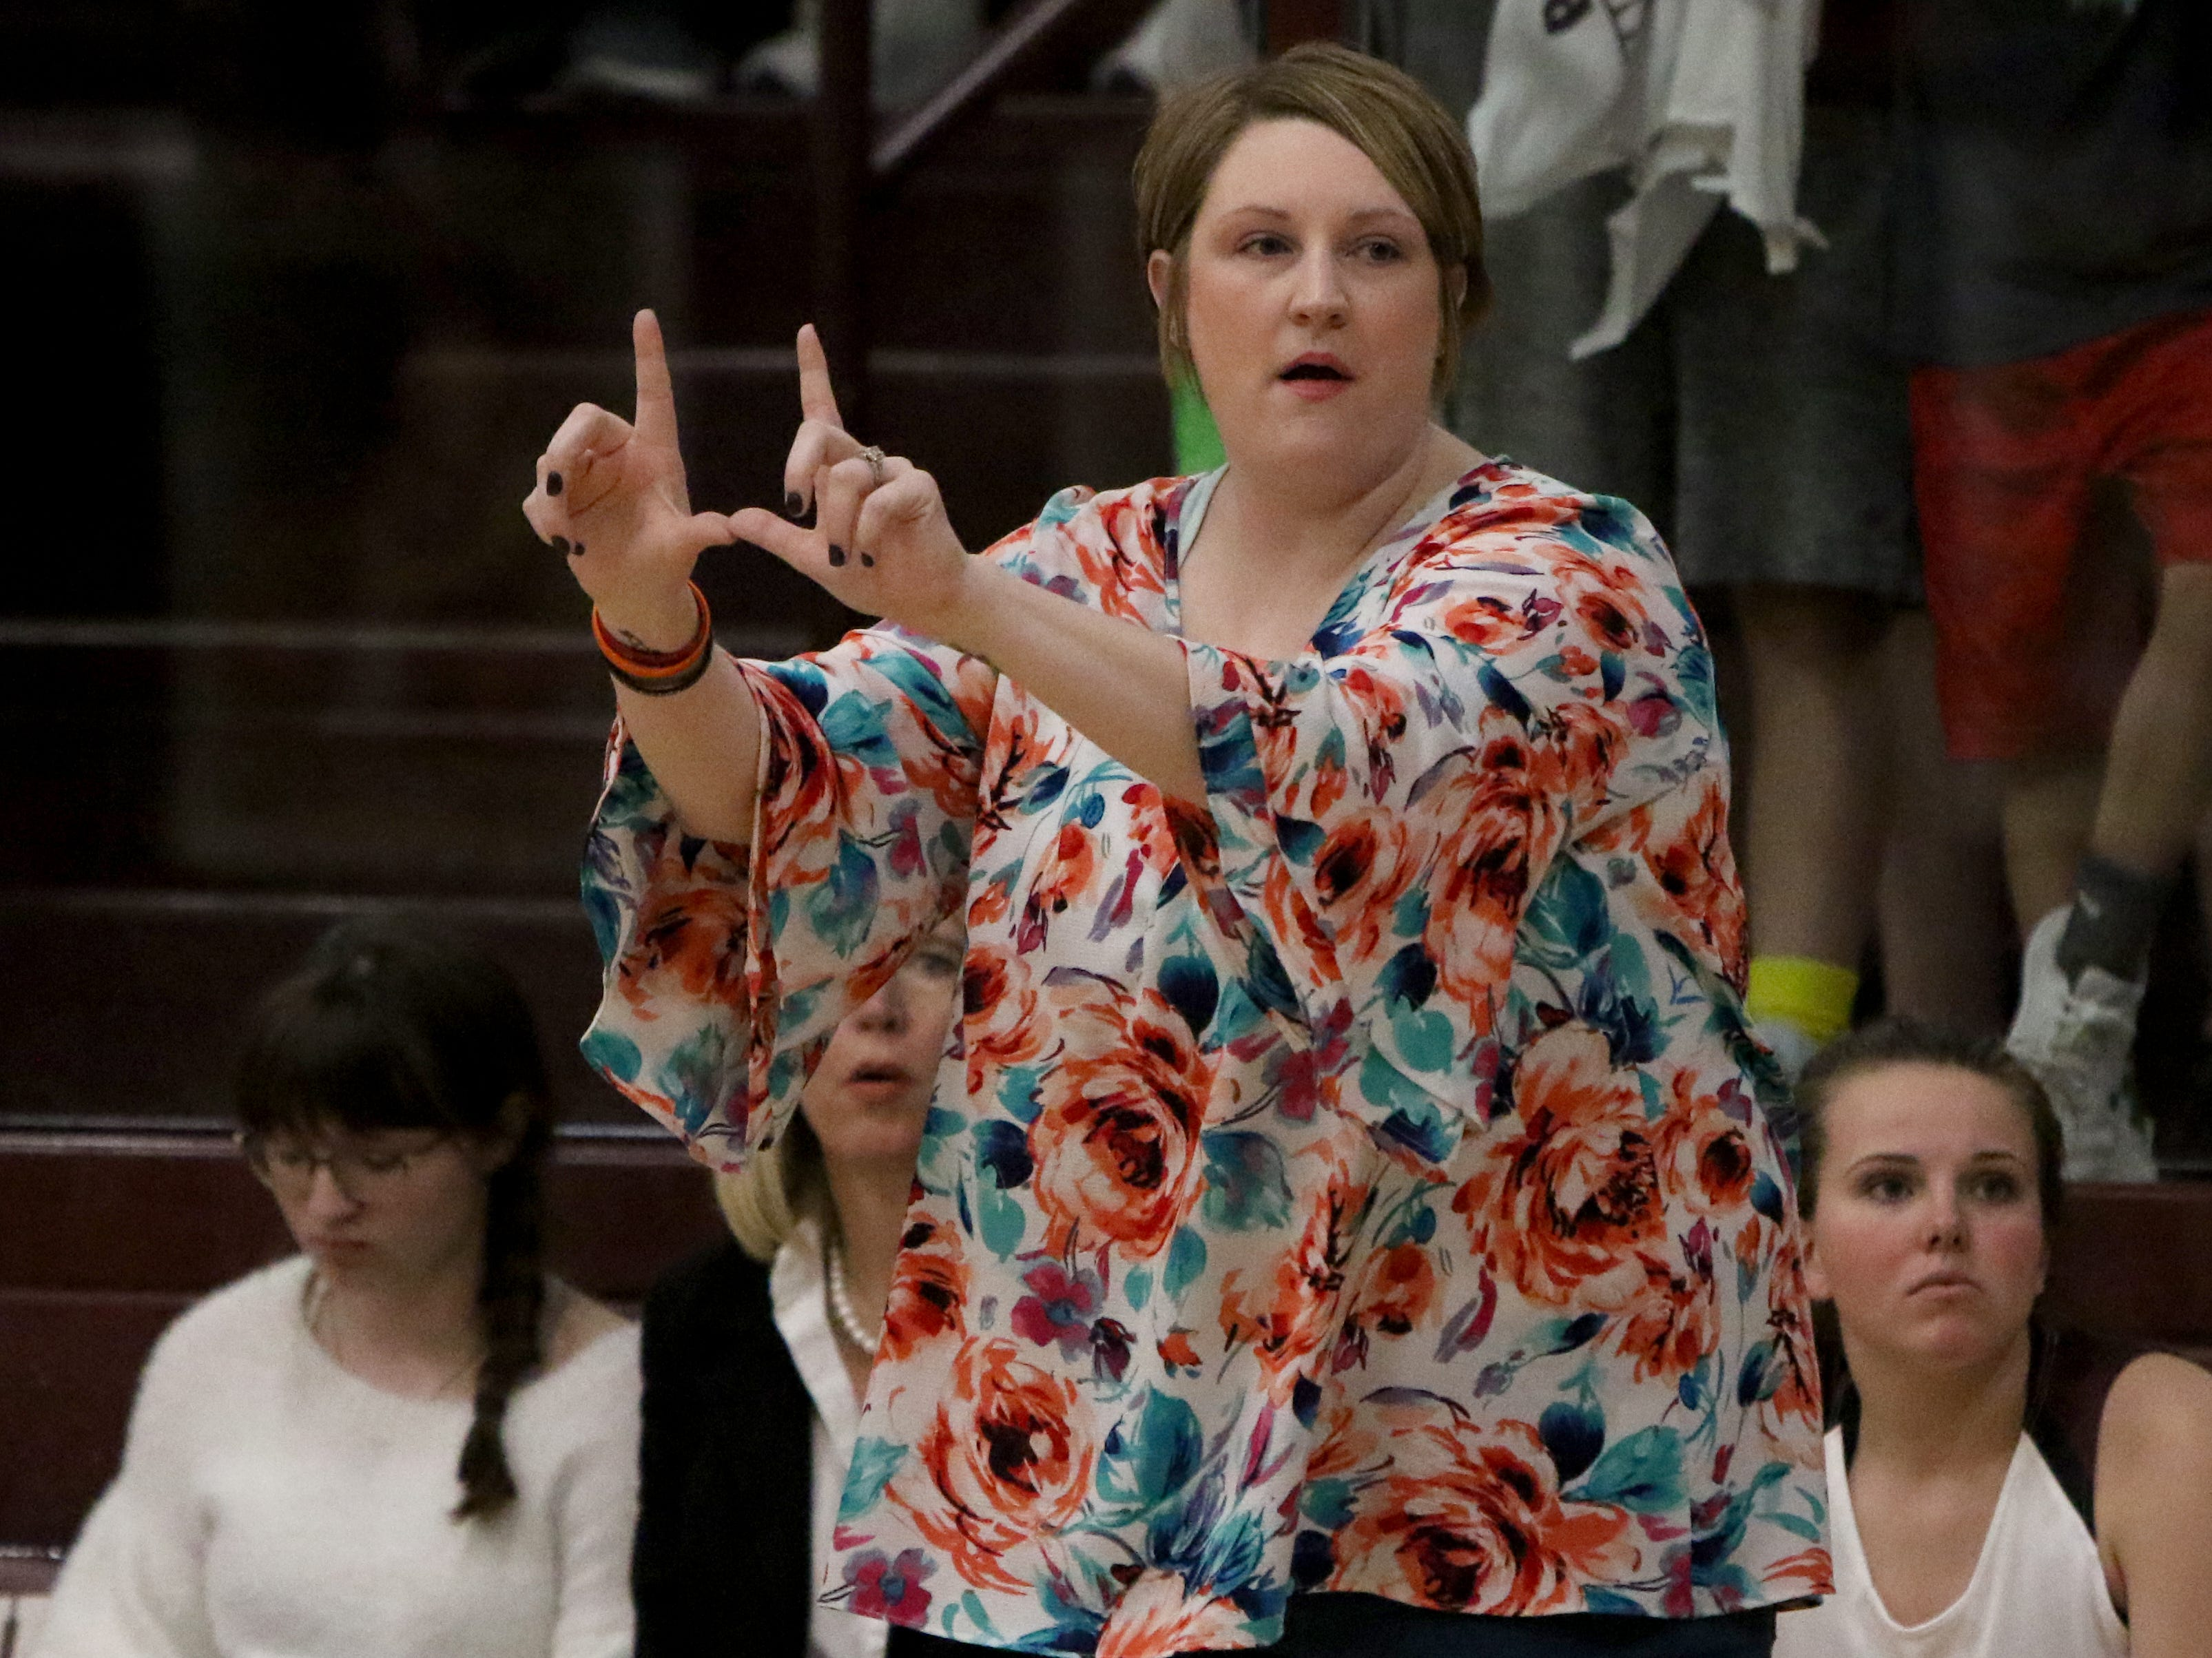 Jamie Hickey coaches the Bowie Lady Rabbits against Nocona  in placed of head coach Chuck Hall Tuesday, Feb. 5, 2019, in Bowie. Nocona defeated Bowie 38-34.